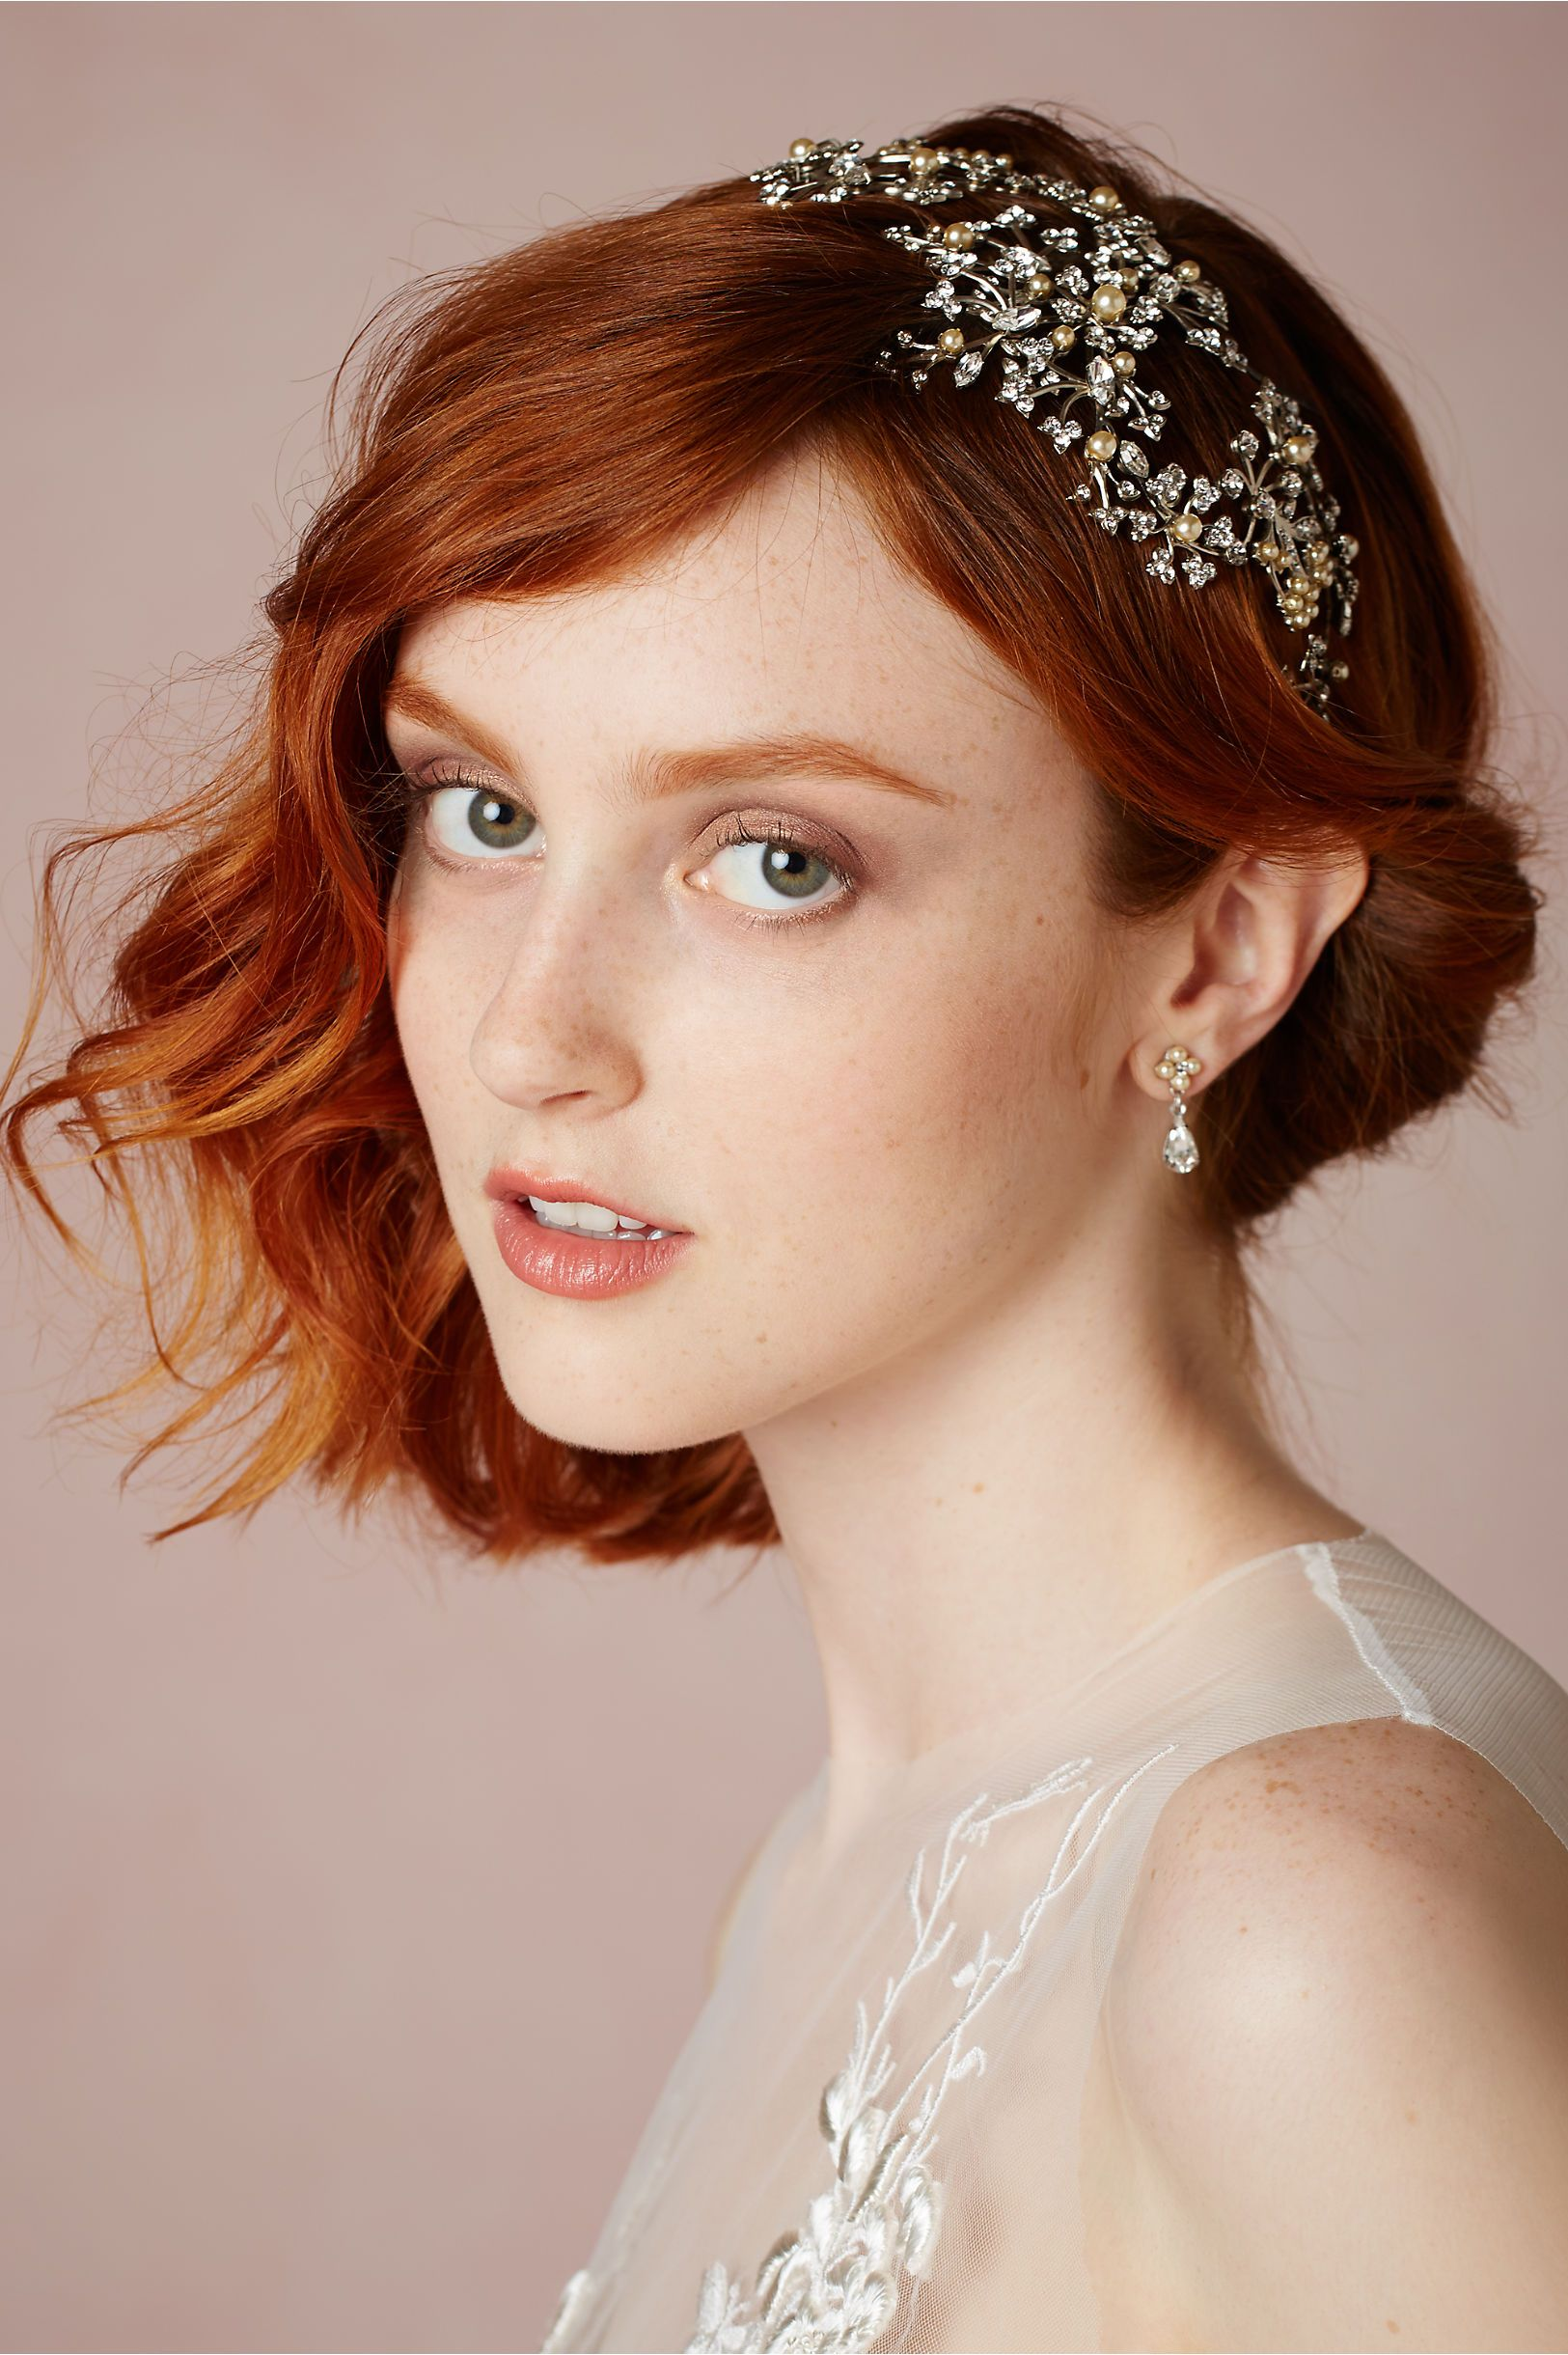 17 Pretty Makeup Ideas With Pastel Colors: 17 Pretty Ways To Style Short Hair For Wedding